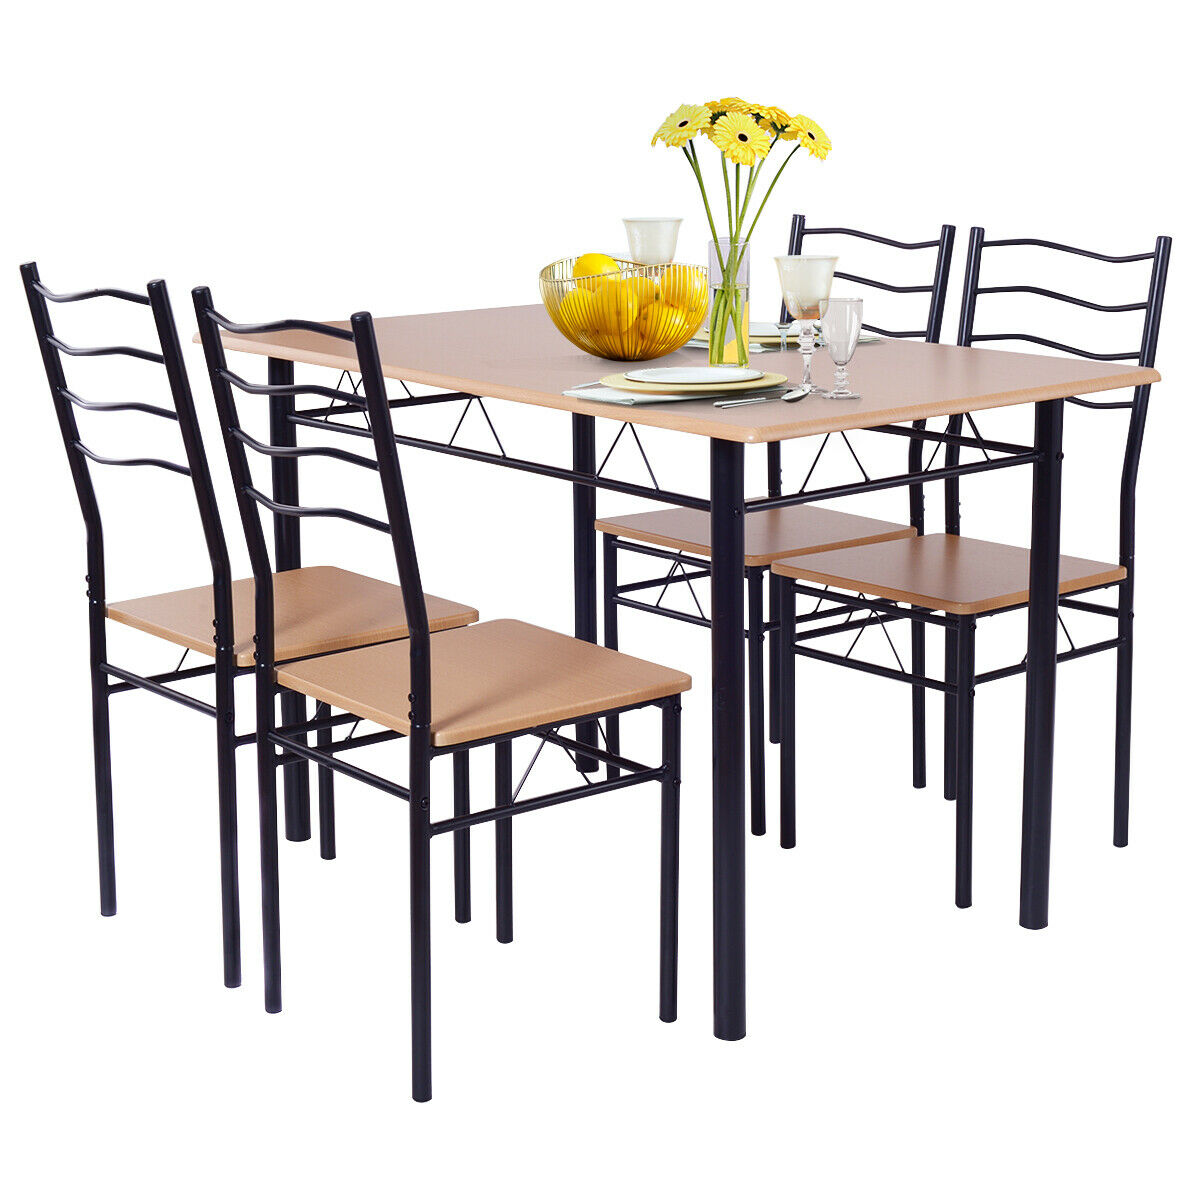 Costway 9 Piece Dining Table Set with 9 Chairs Wood Metal Kitchen Breakfast  Furniture